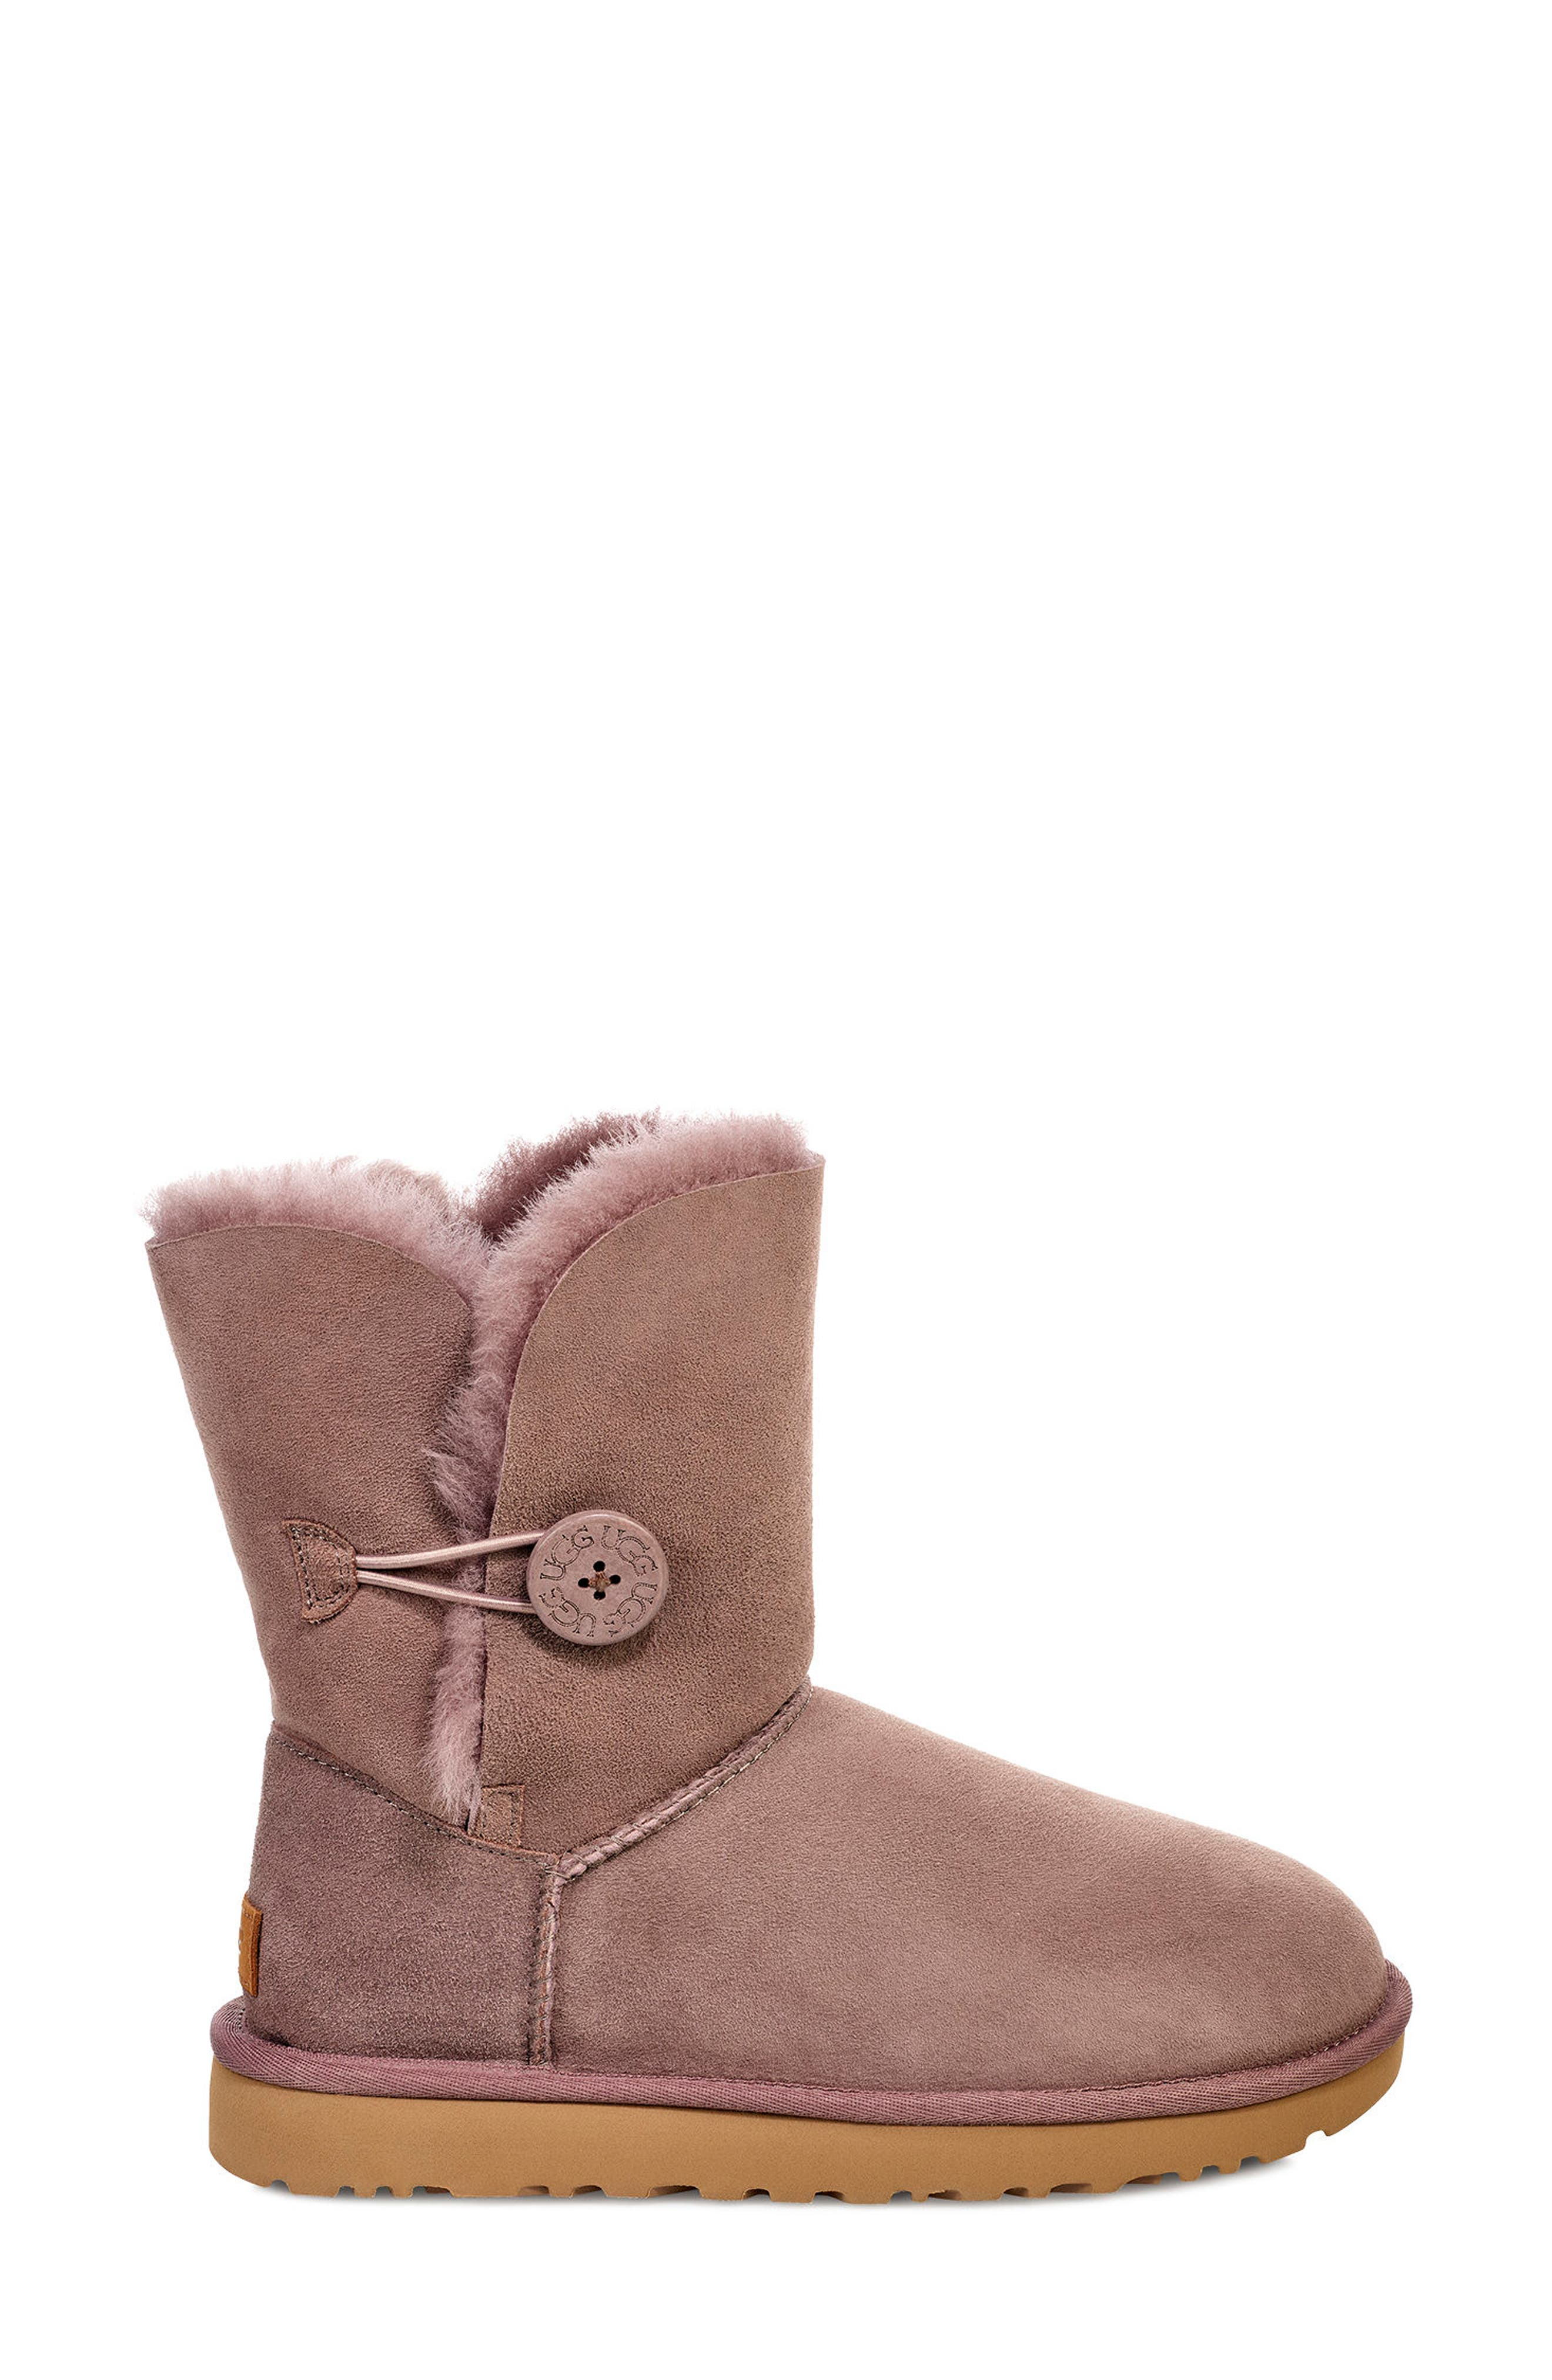 'Bailey Button II' Boot,                             Alternate thumbnail 3, color,                             STORMY GREY SUEDE